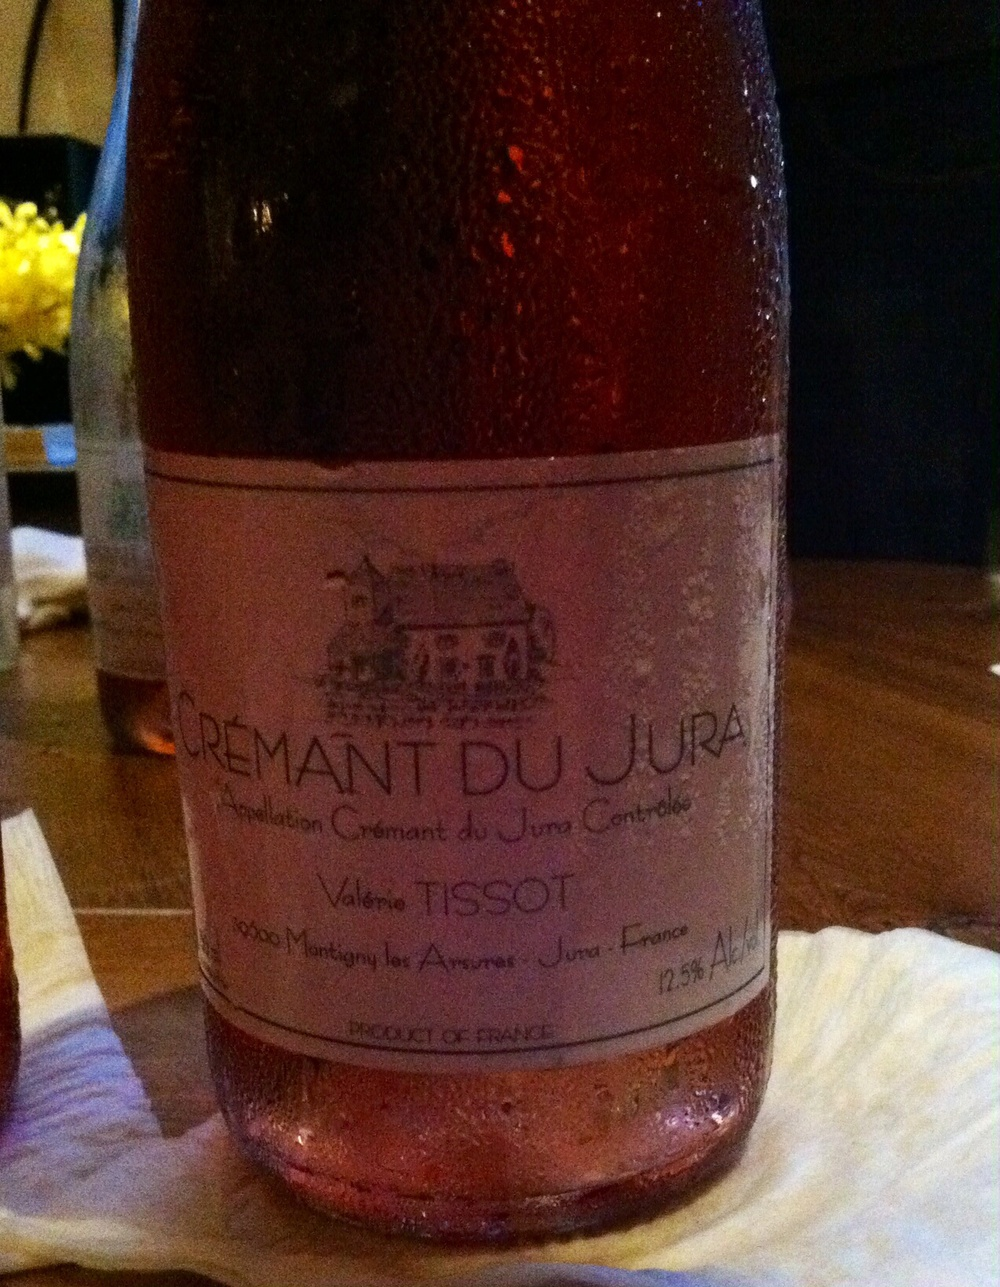 Tissot, Cremant du Jura, France, NV. Photo by Shana Sokol, Shana Speaks Wine